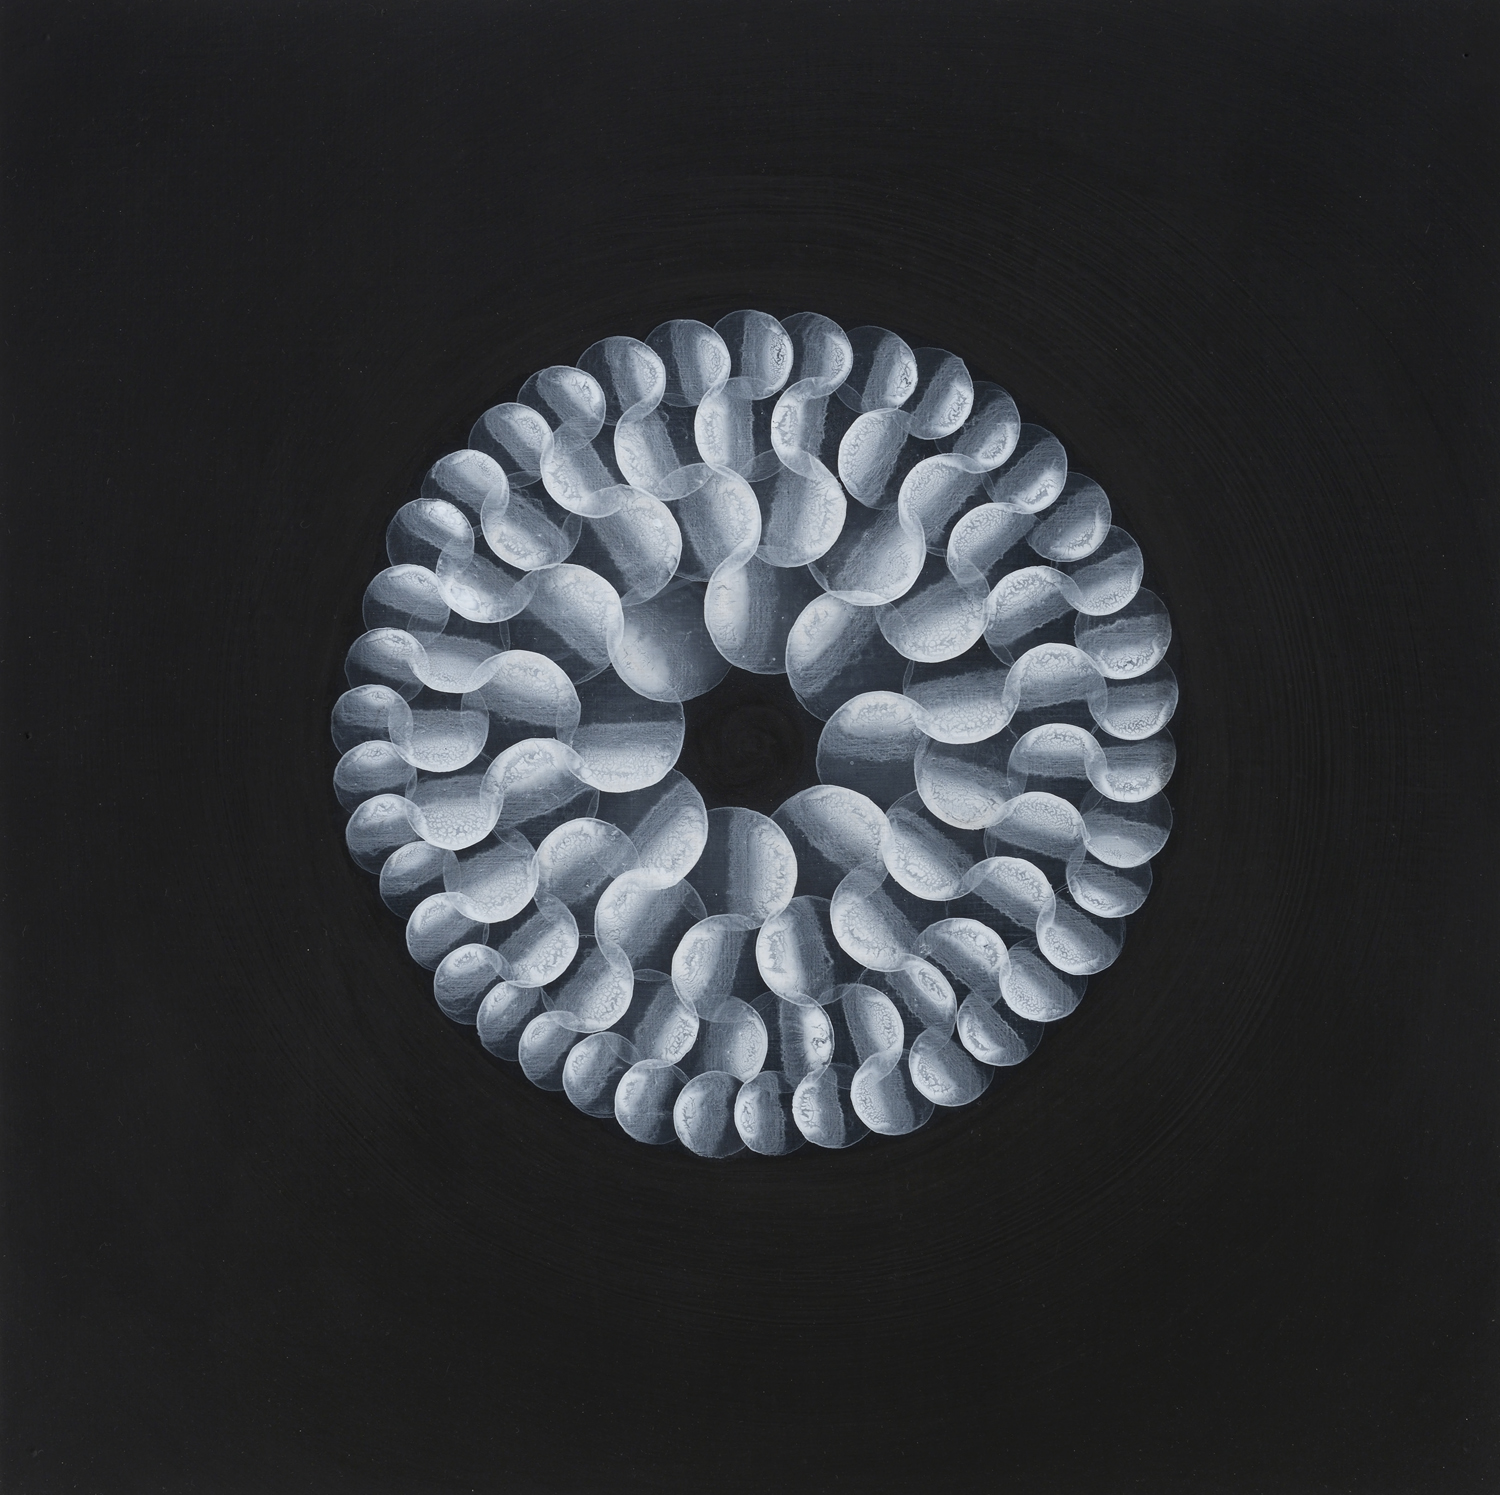 Yvonne Behnke white on black painting cercles form a geometric 3D illusion kinetic